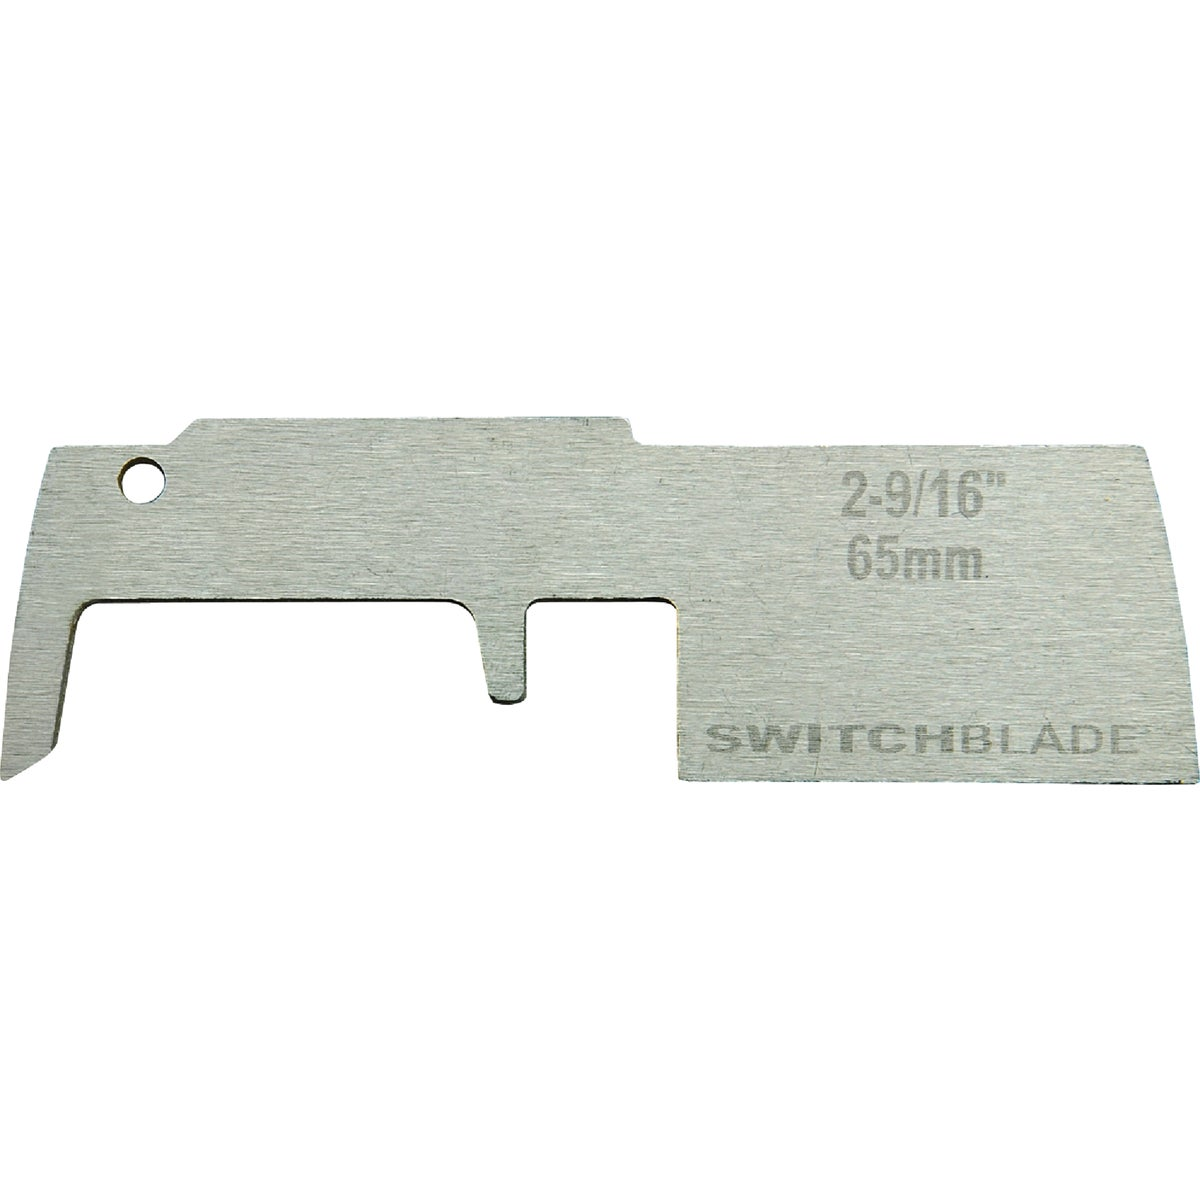 "1PK 2-1/8"" SWITCHBLADE - 48255440 by Milwaukee Accessory"